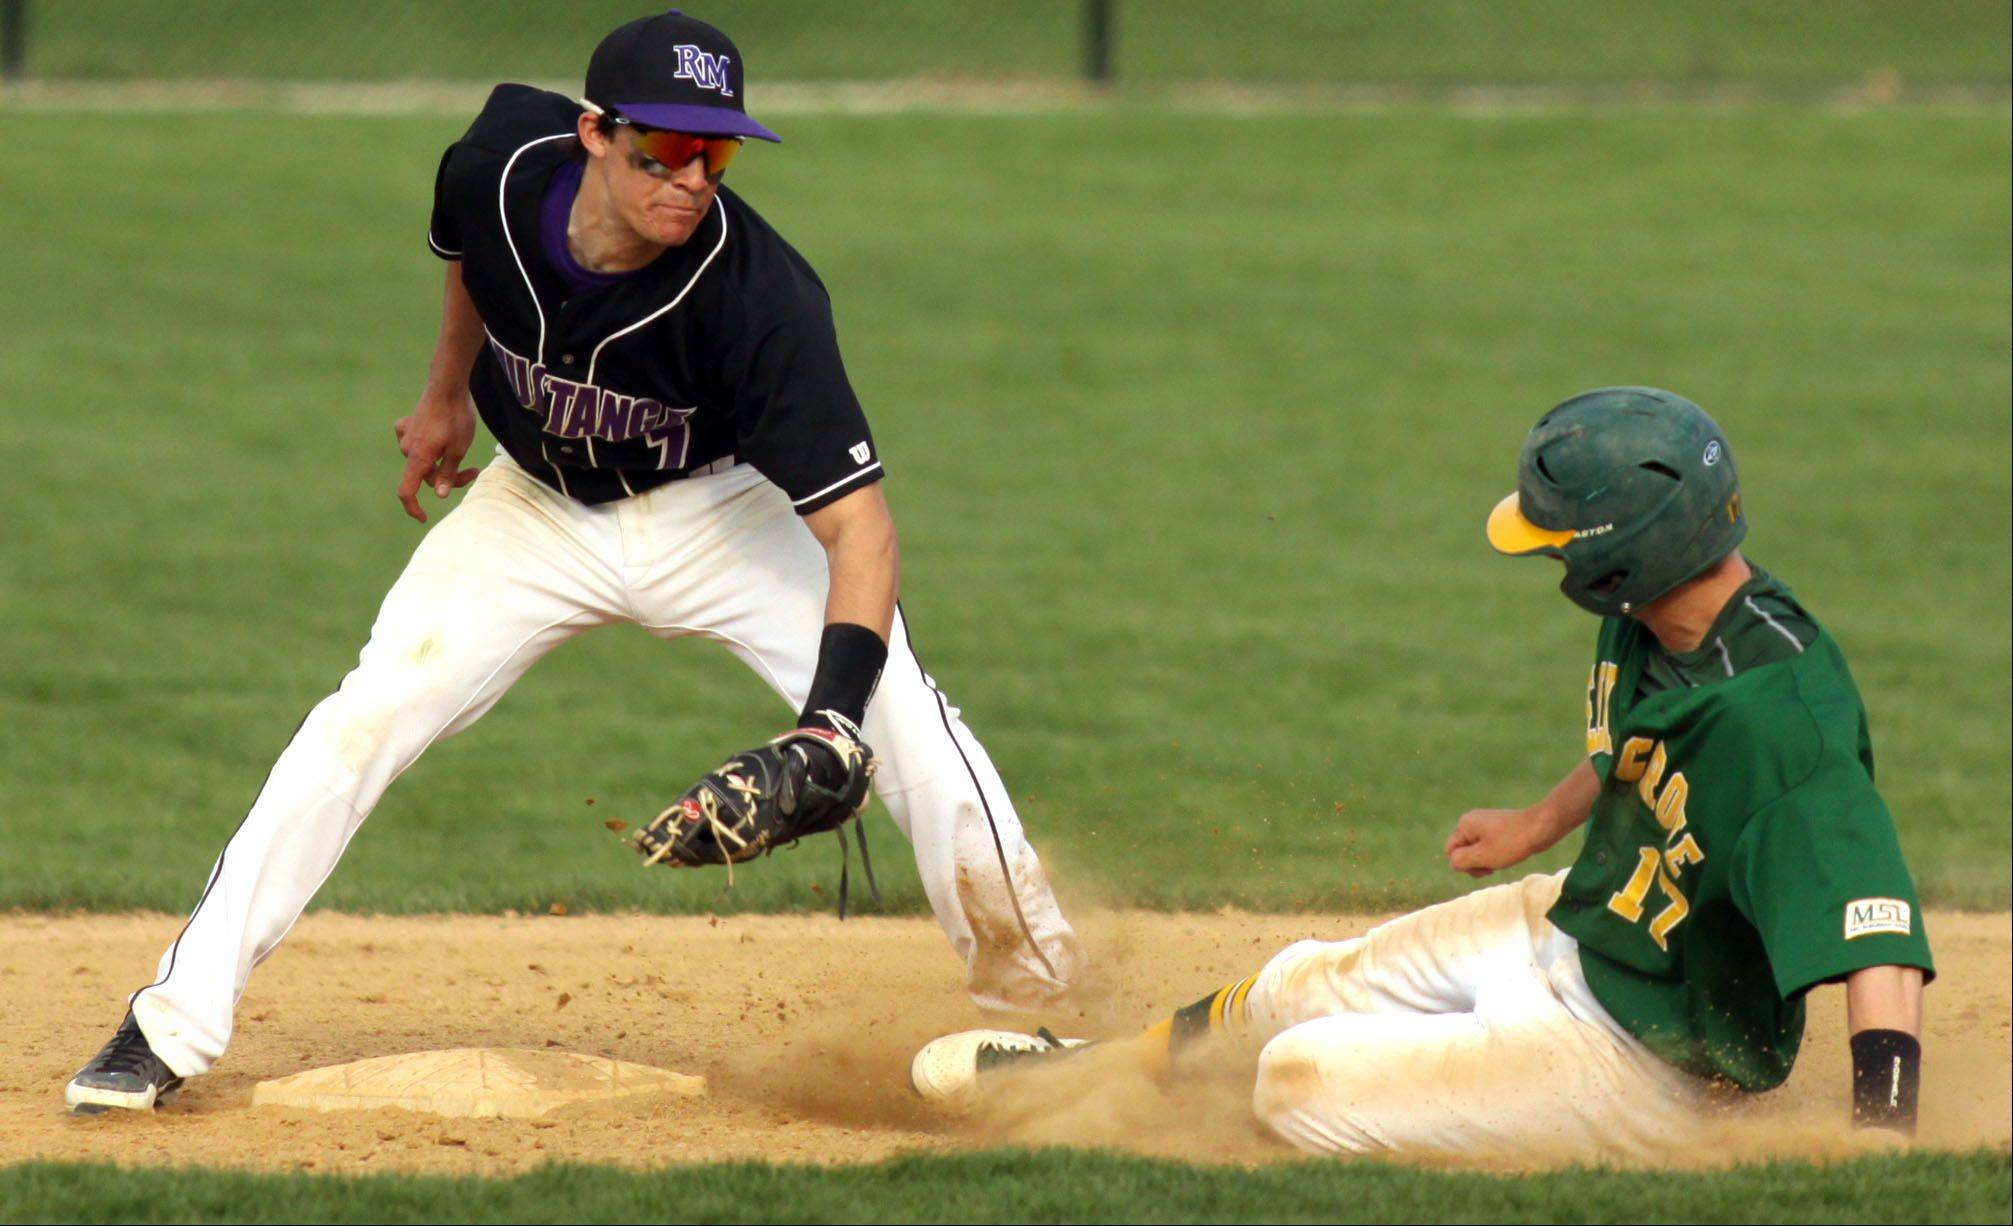 Rolling Meadows' Zach Schultz, left, prepares to tag out Elk Grove's Patrick O'Malley on a steal attempt at second base at South Salk Park in Rolling Meadows on Monday evening.